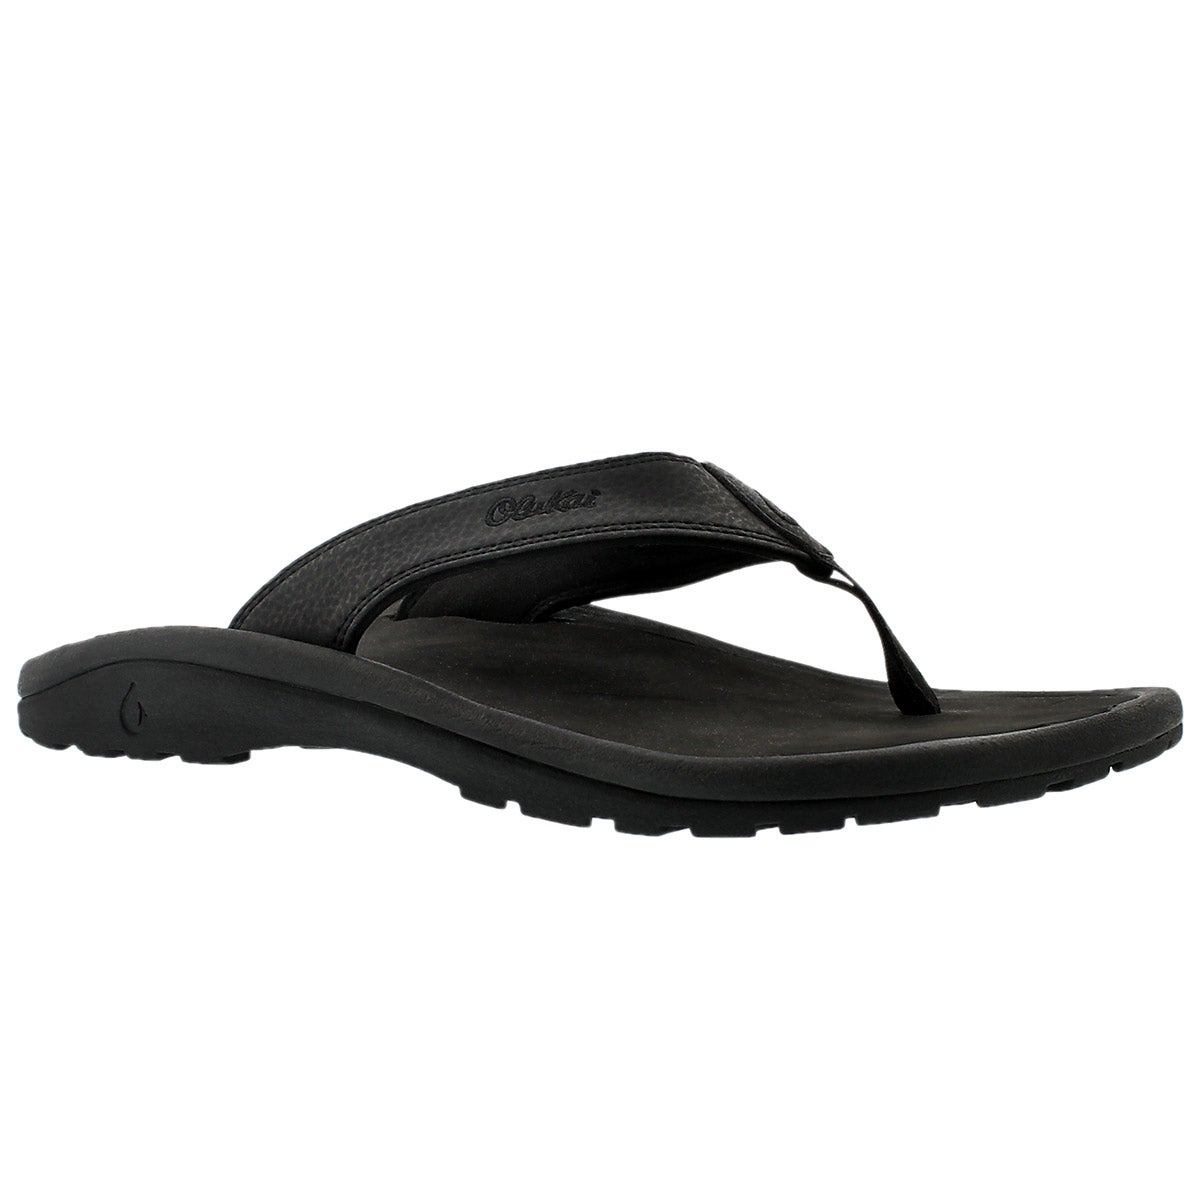 Men's OHANA black thong sandals